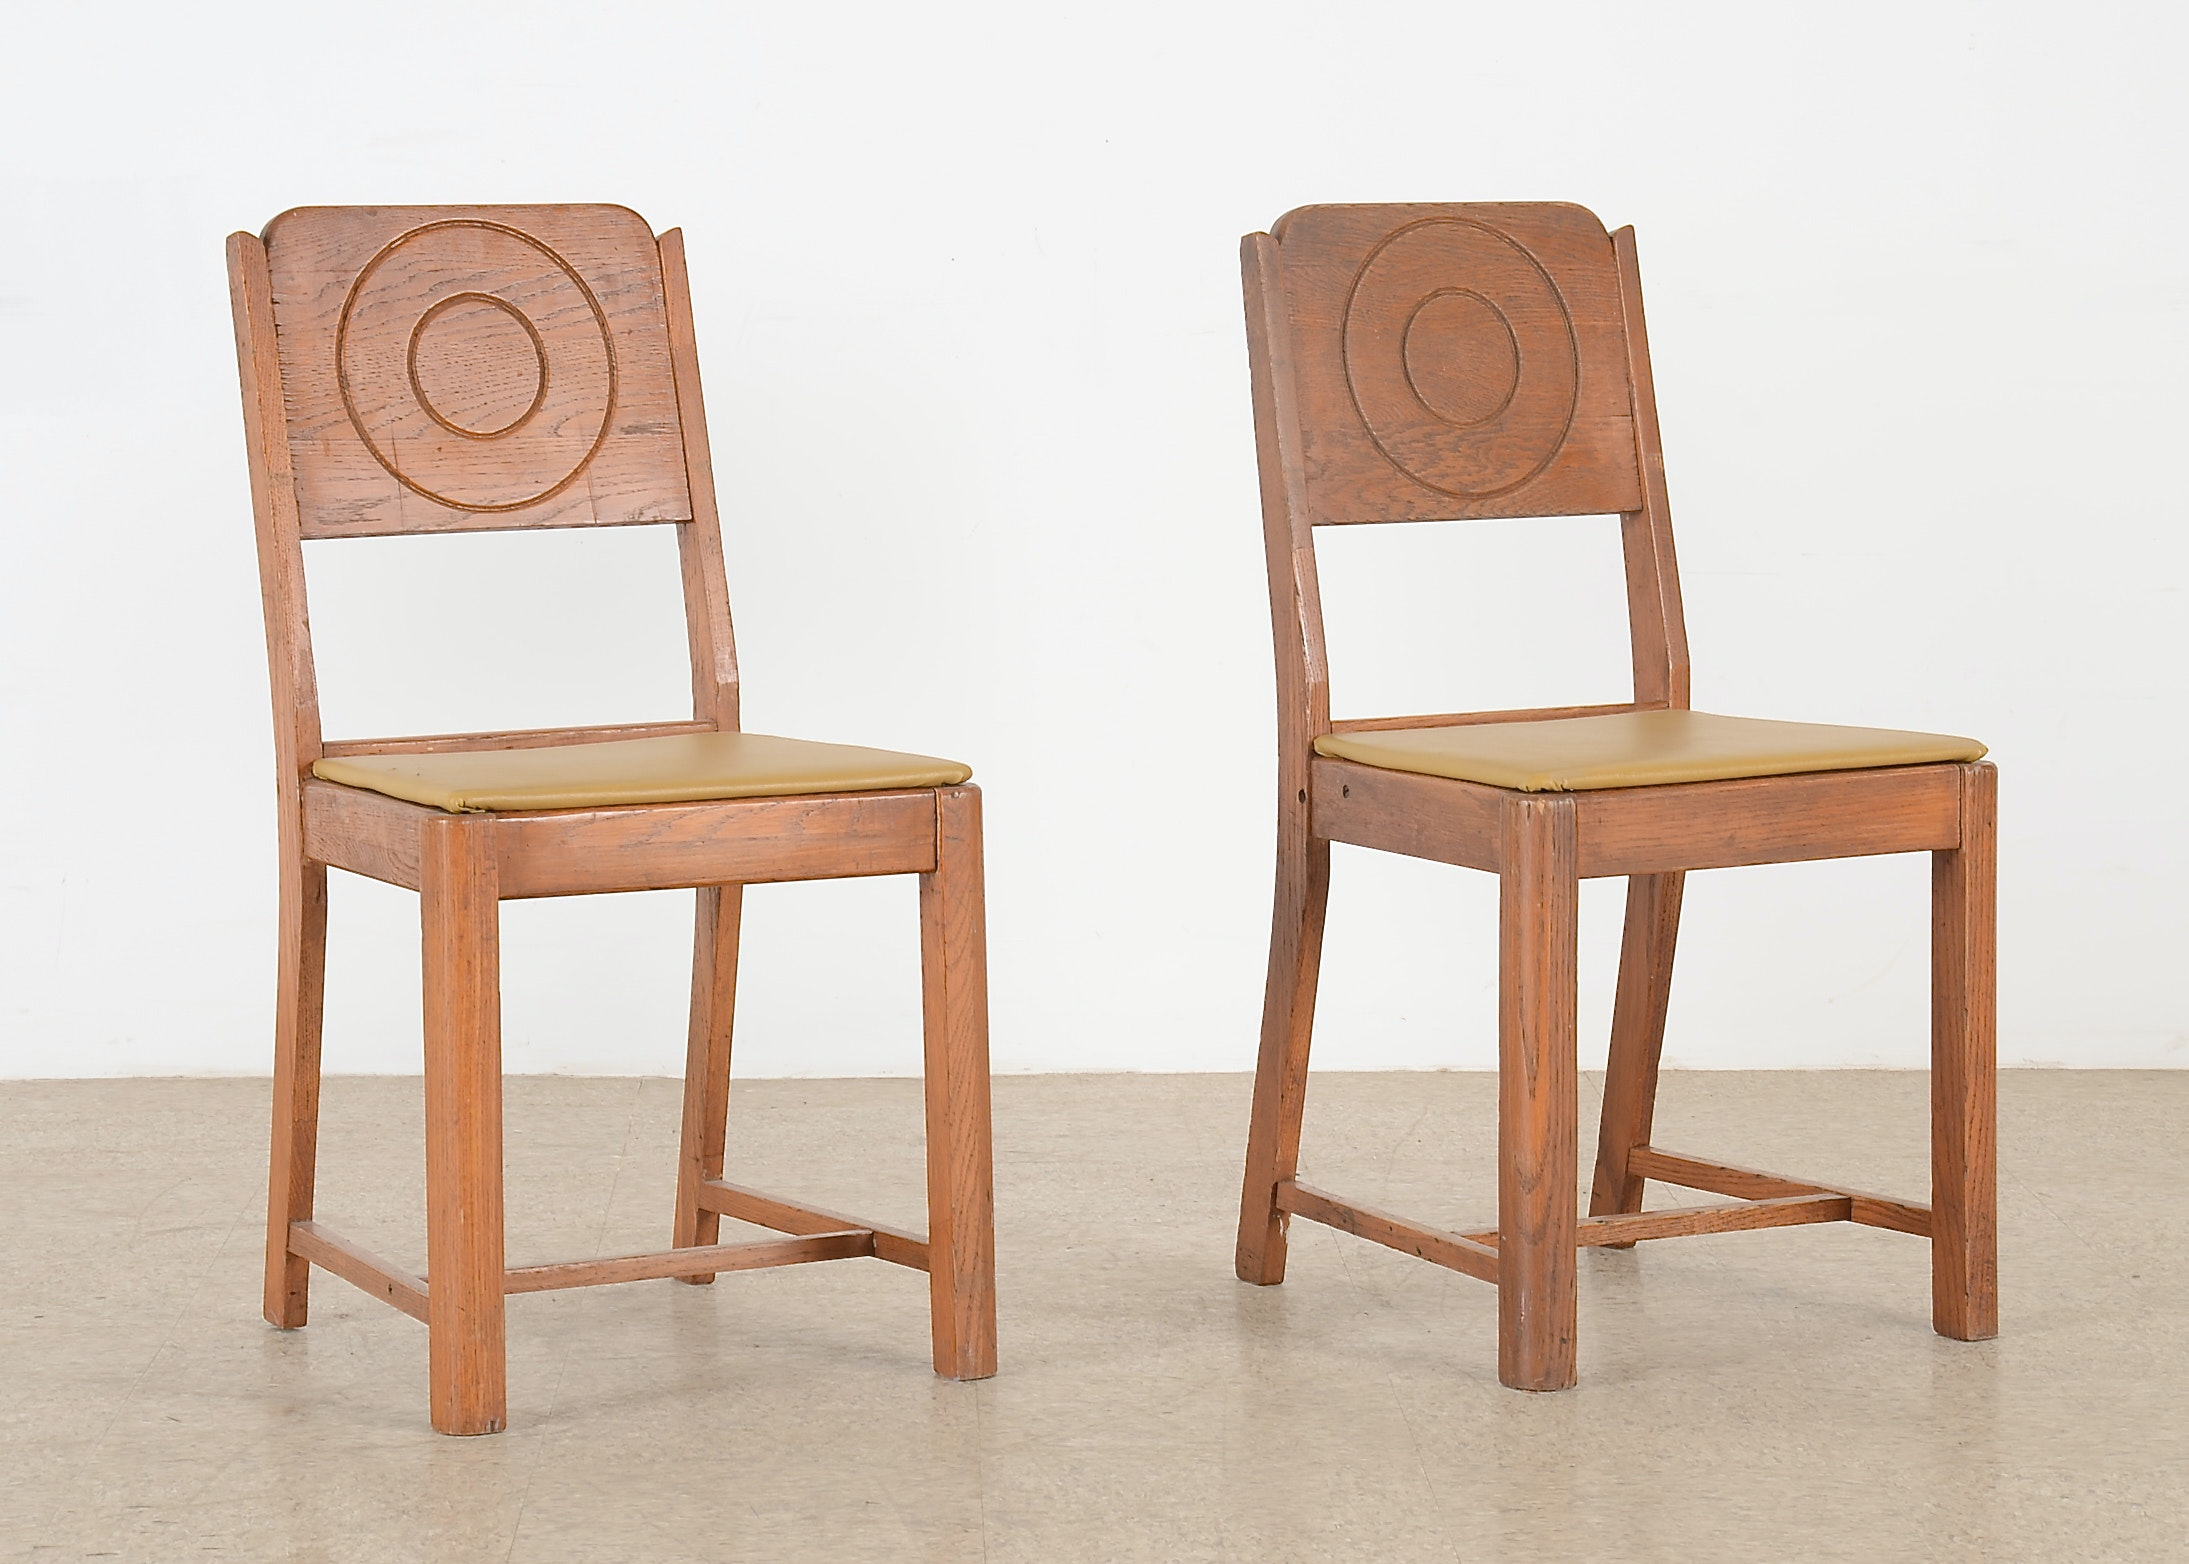 Pair Of Kuehne Manufacturing Co Dining Room Chairs Ebth